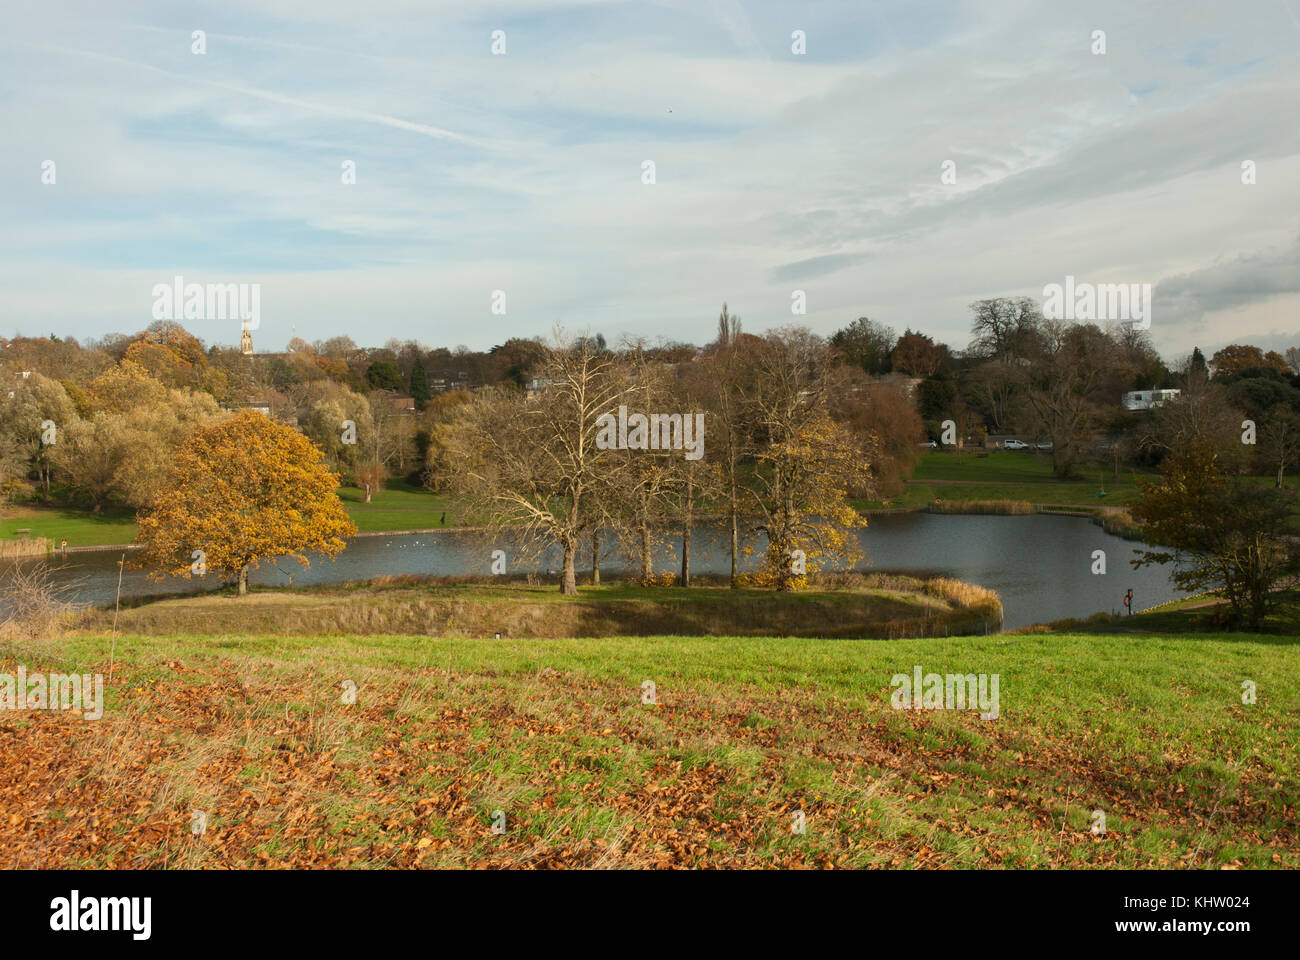 View across the Model Boating Pond, Hampstead Heath with warm autumn colours of the lake, trees and meadow. Highgate - Stock Image